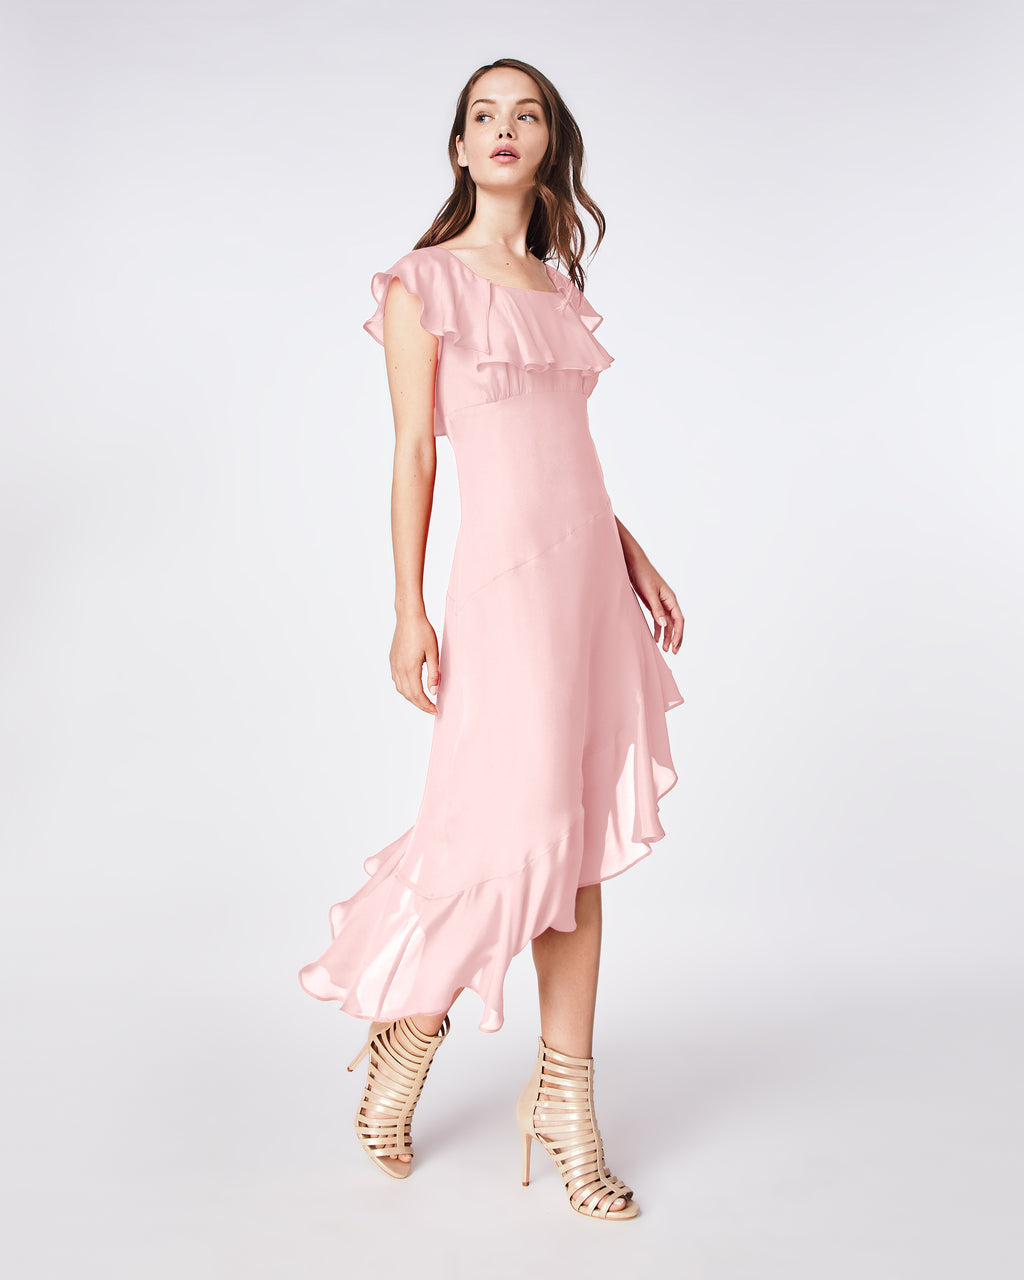 BQ10328 - SOLID SILK BLEND FLUTTER SLEEVE DRESS - dresses - midi - This effortless midi dress offers a fresh update to classic style. A silk blend, this feminine style features ruffles and a flattering fitted bodice. Pack it for a holiday getaway or layer a sweater over it.